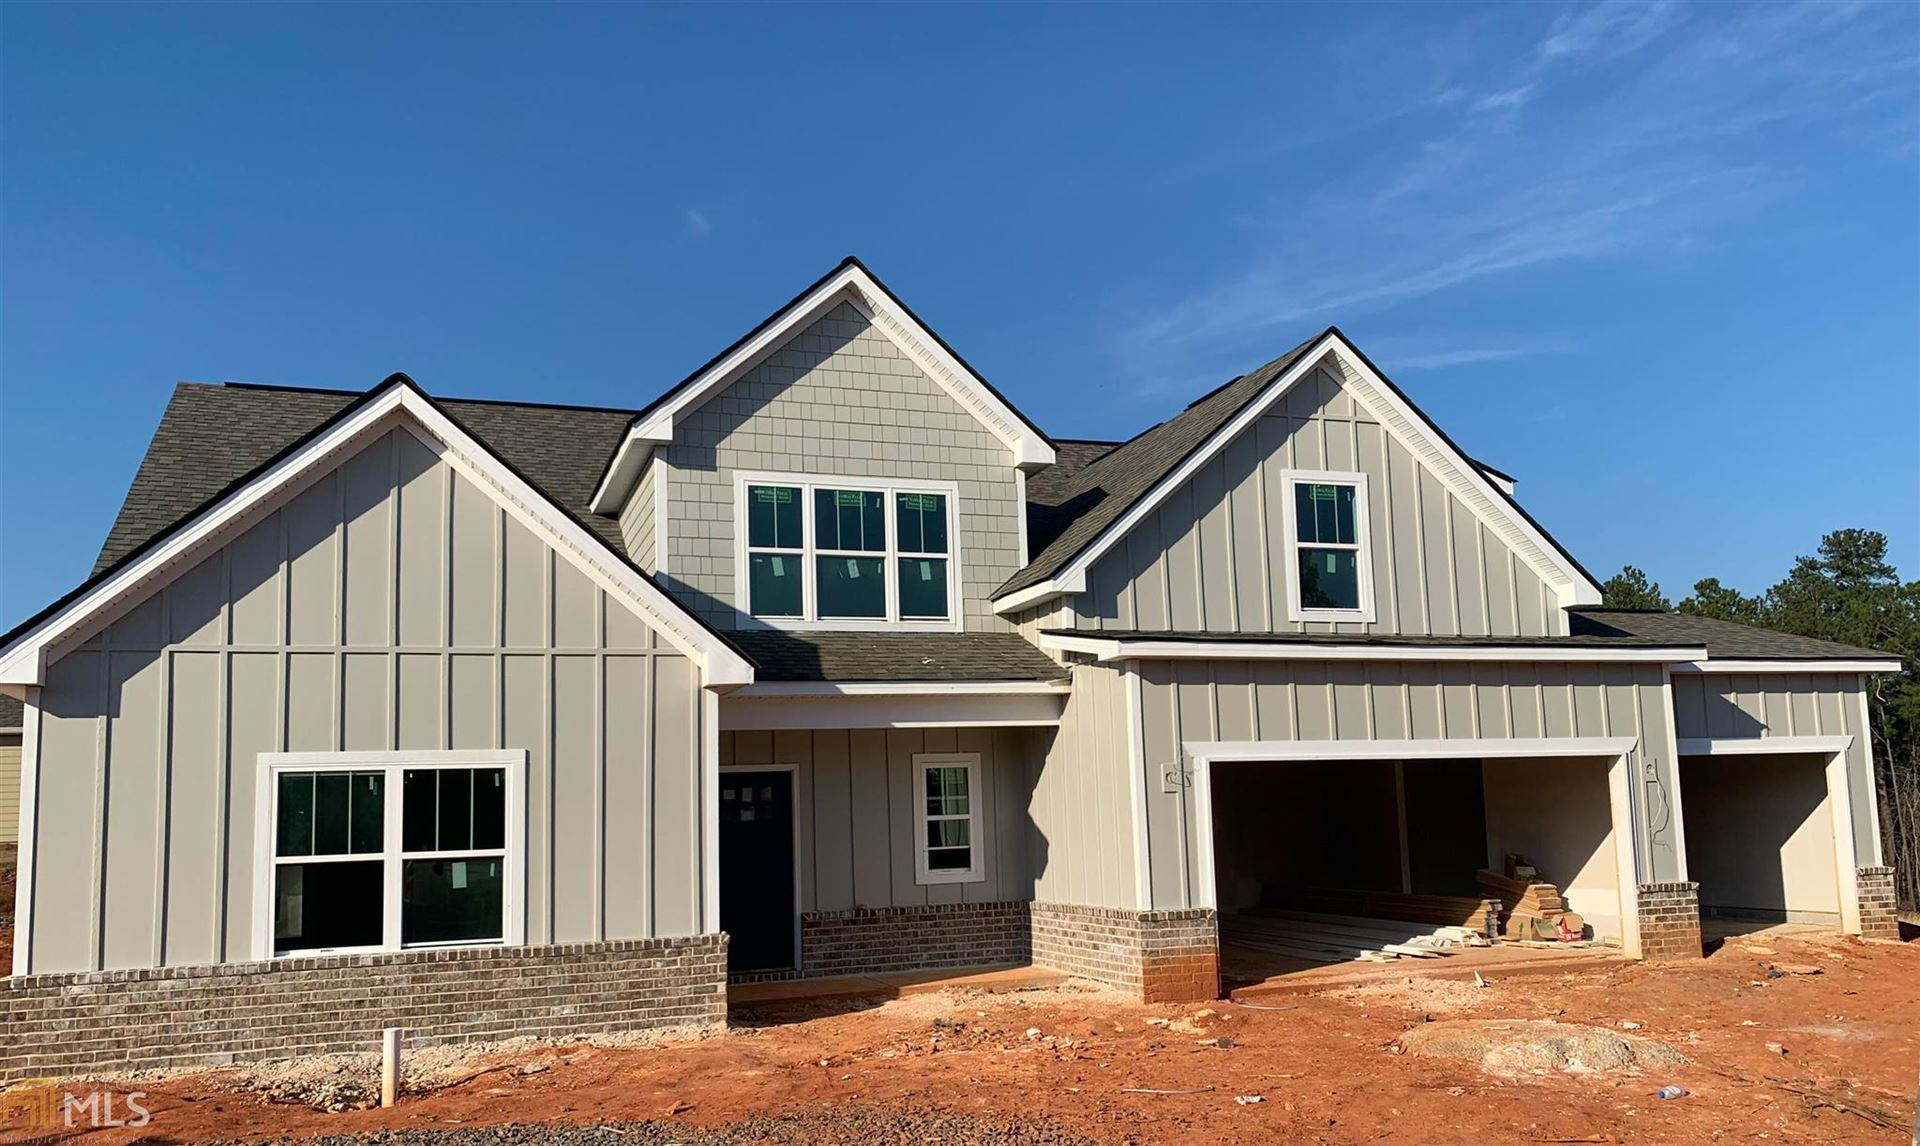 241 Trellis Walk, Macon, GA 31220 - MLS#: 8908659